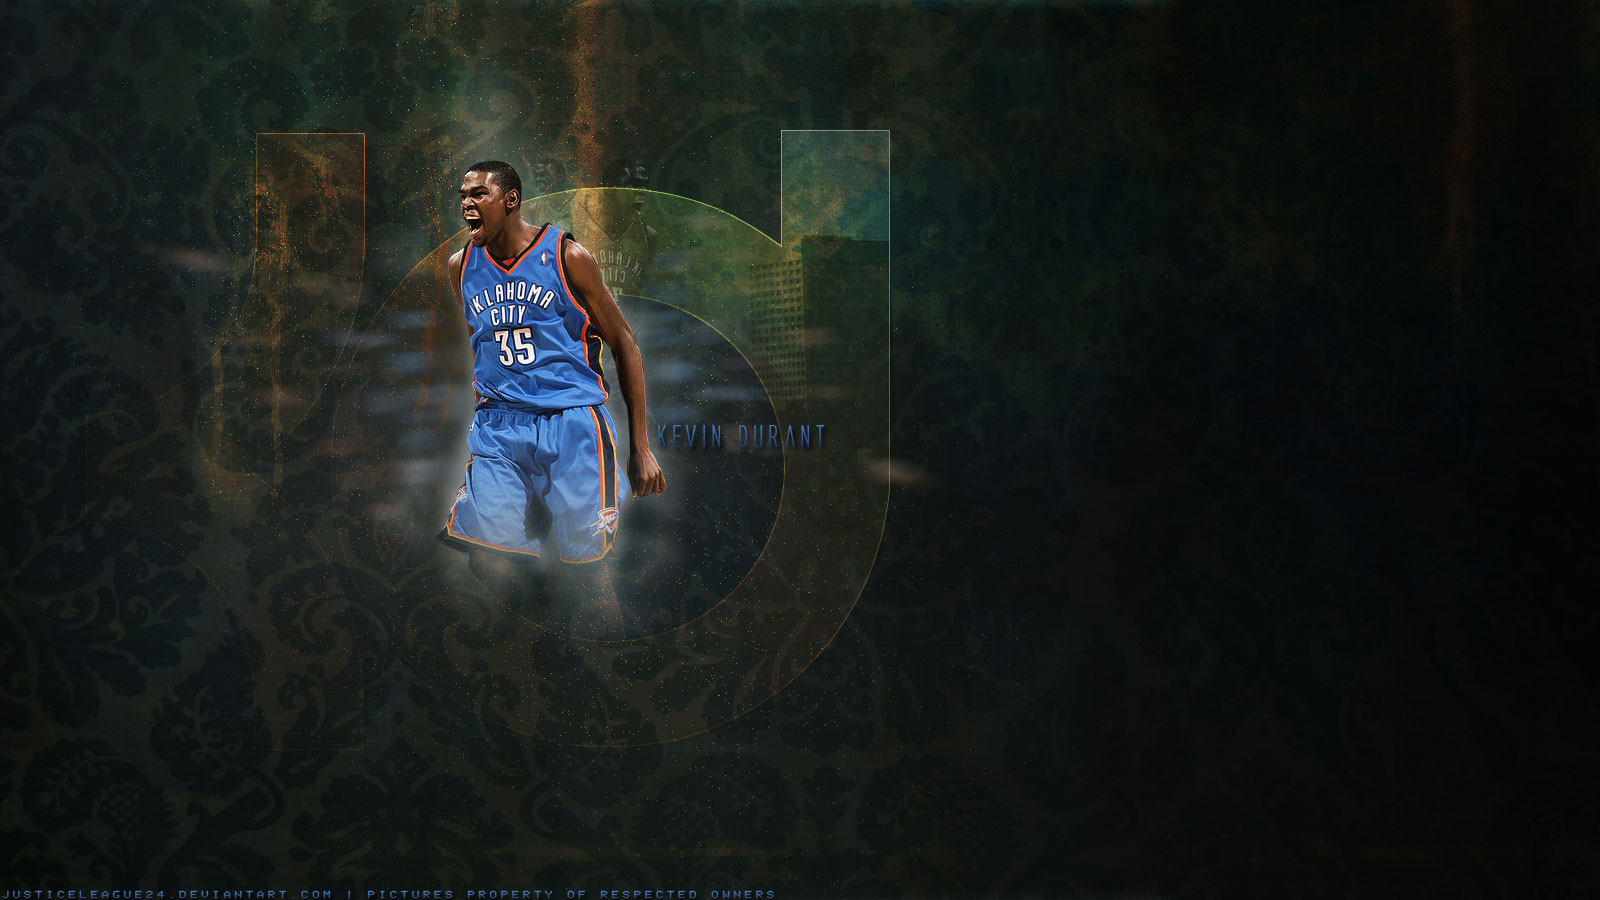 Kevin Durant Wallpaper Screaming and Celebrating NBA Picture 1600x900